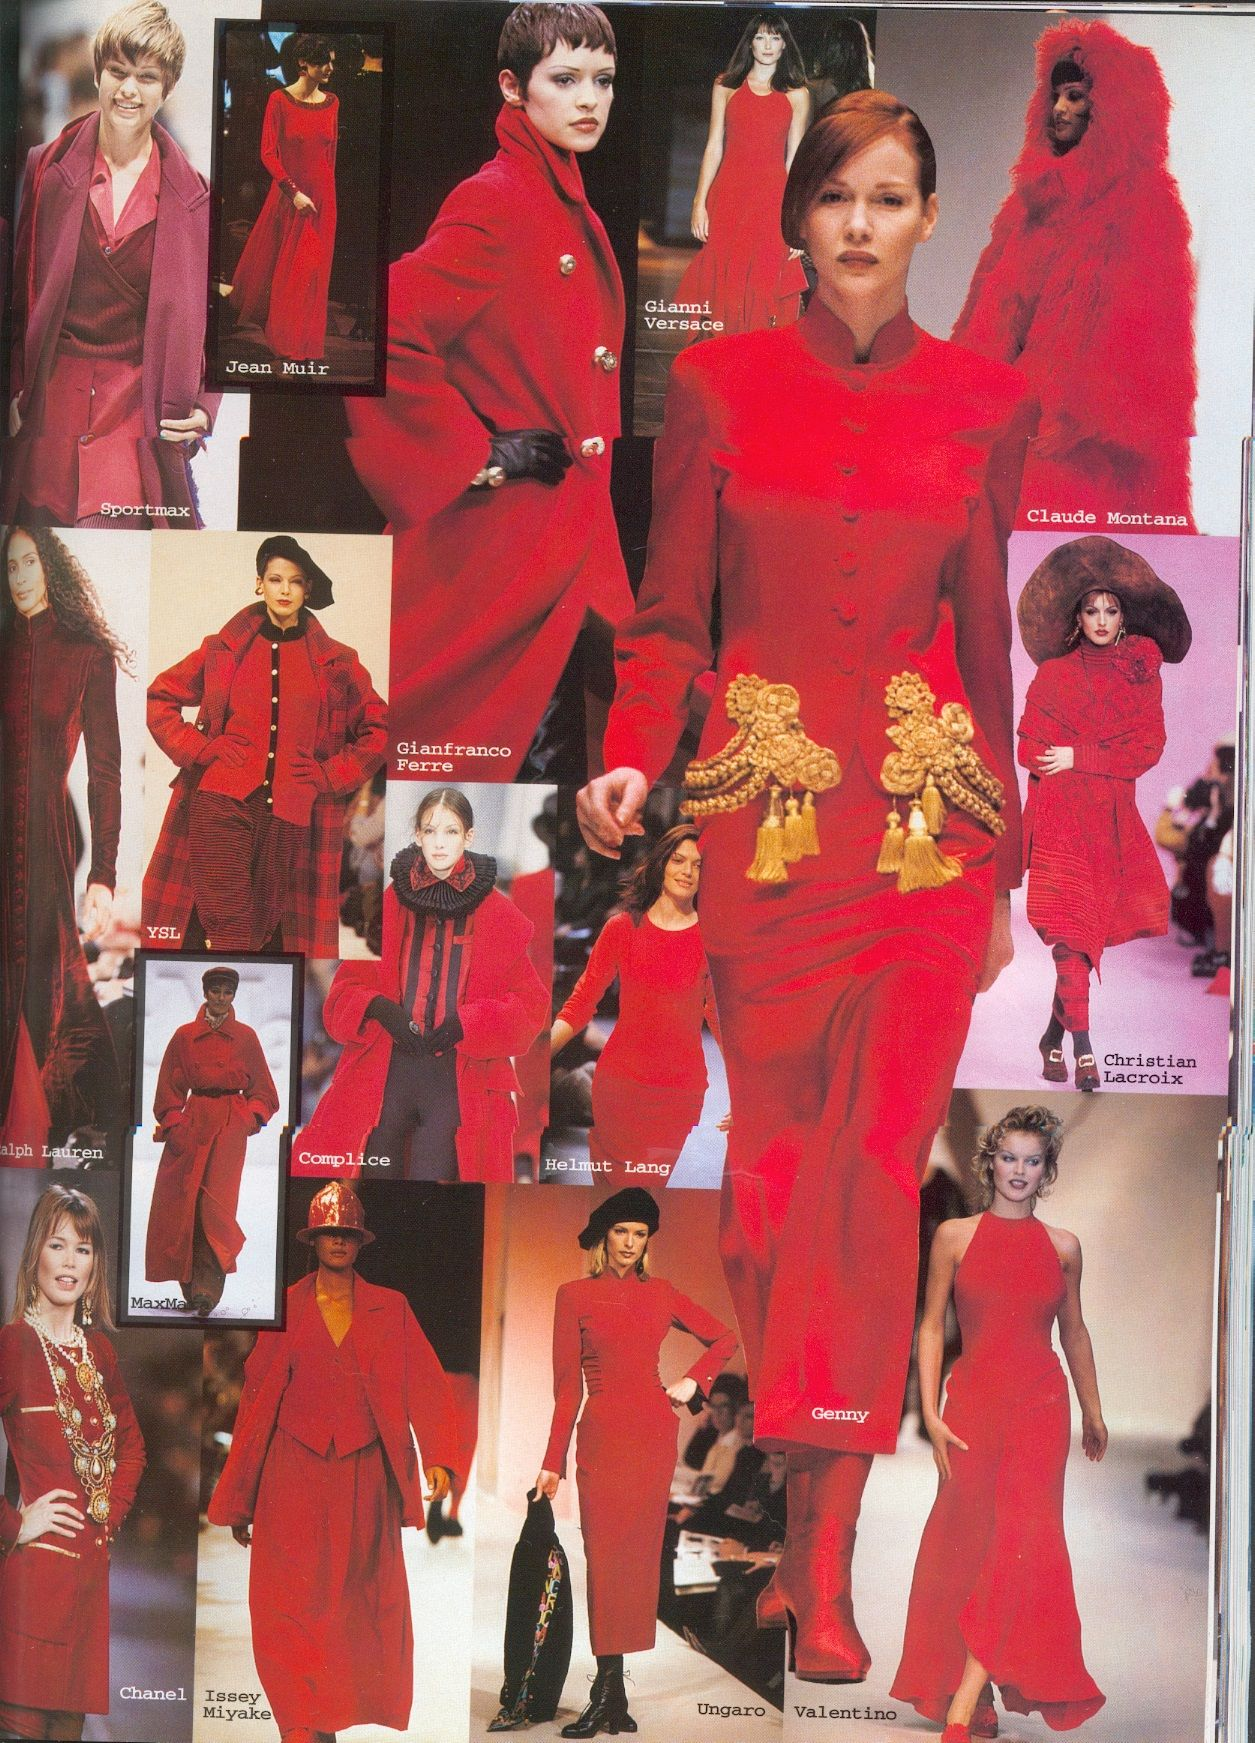 Red 90s glam!